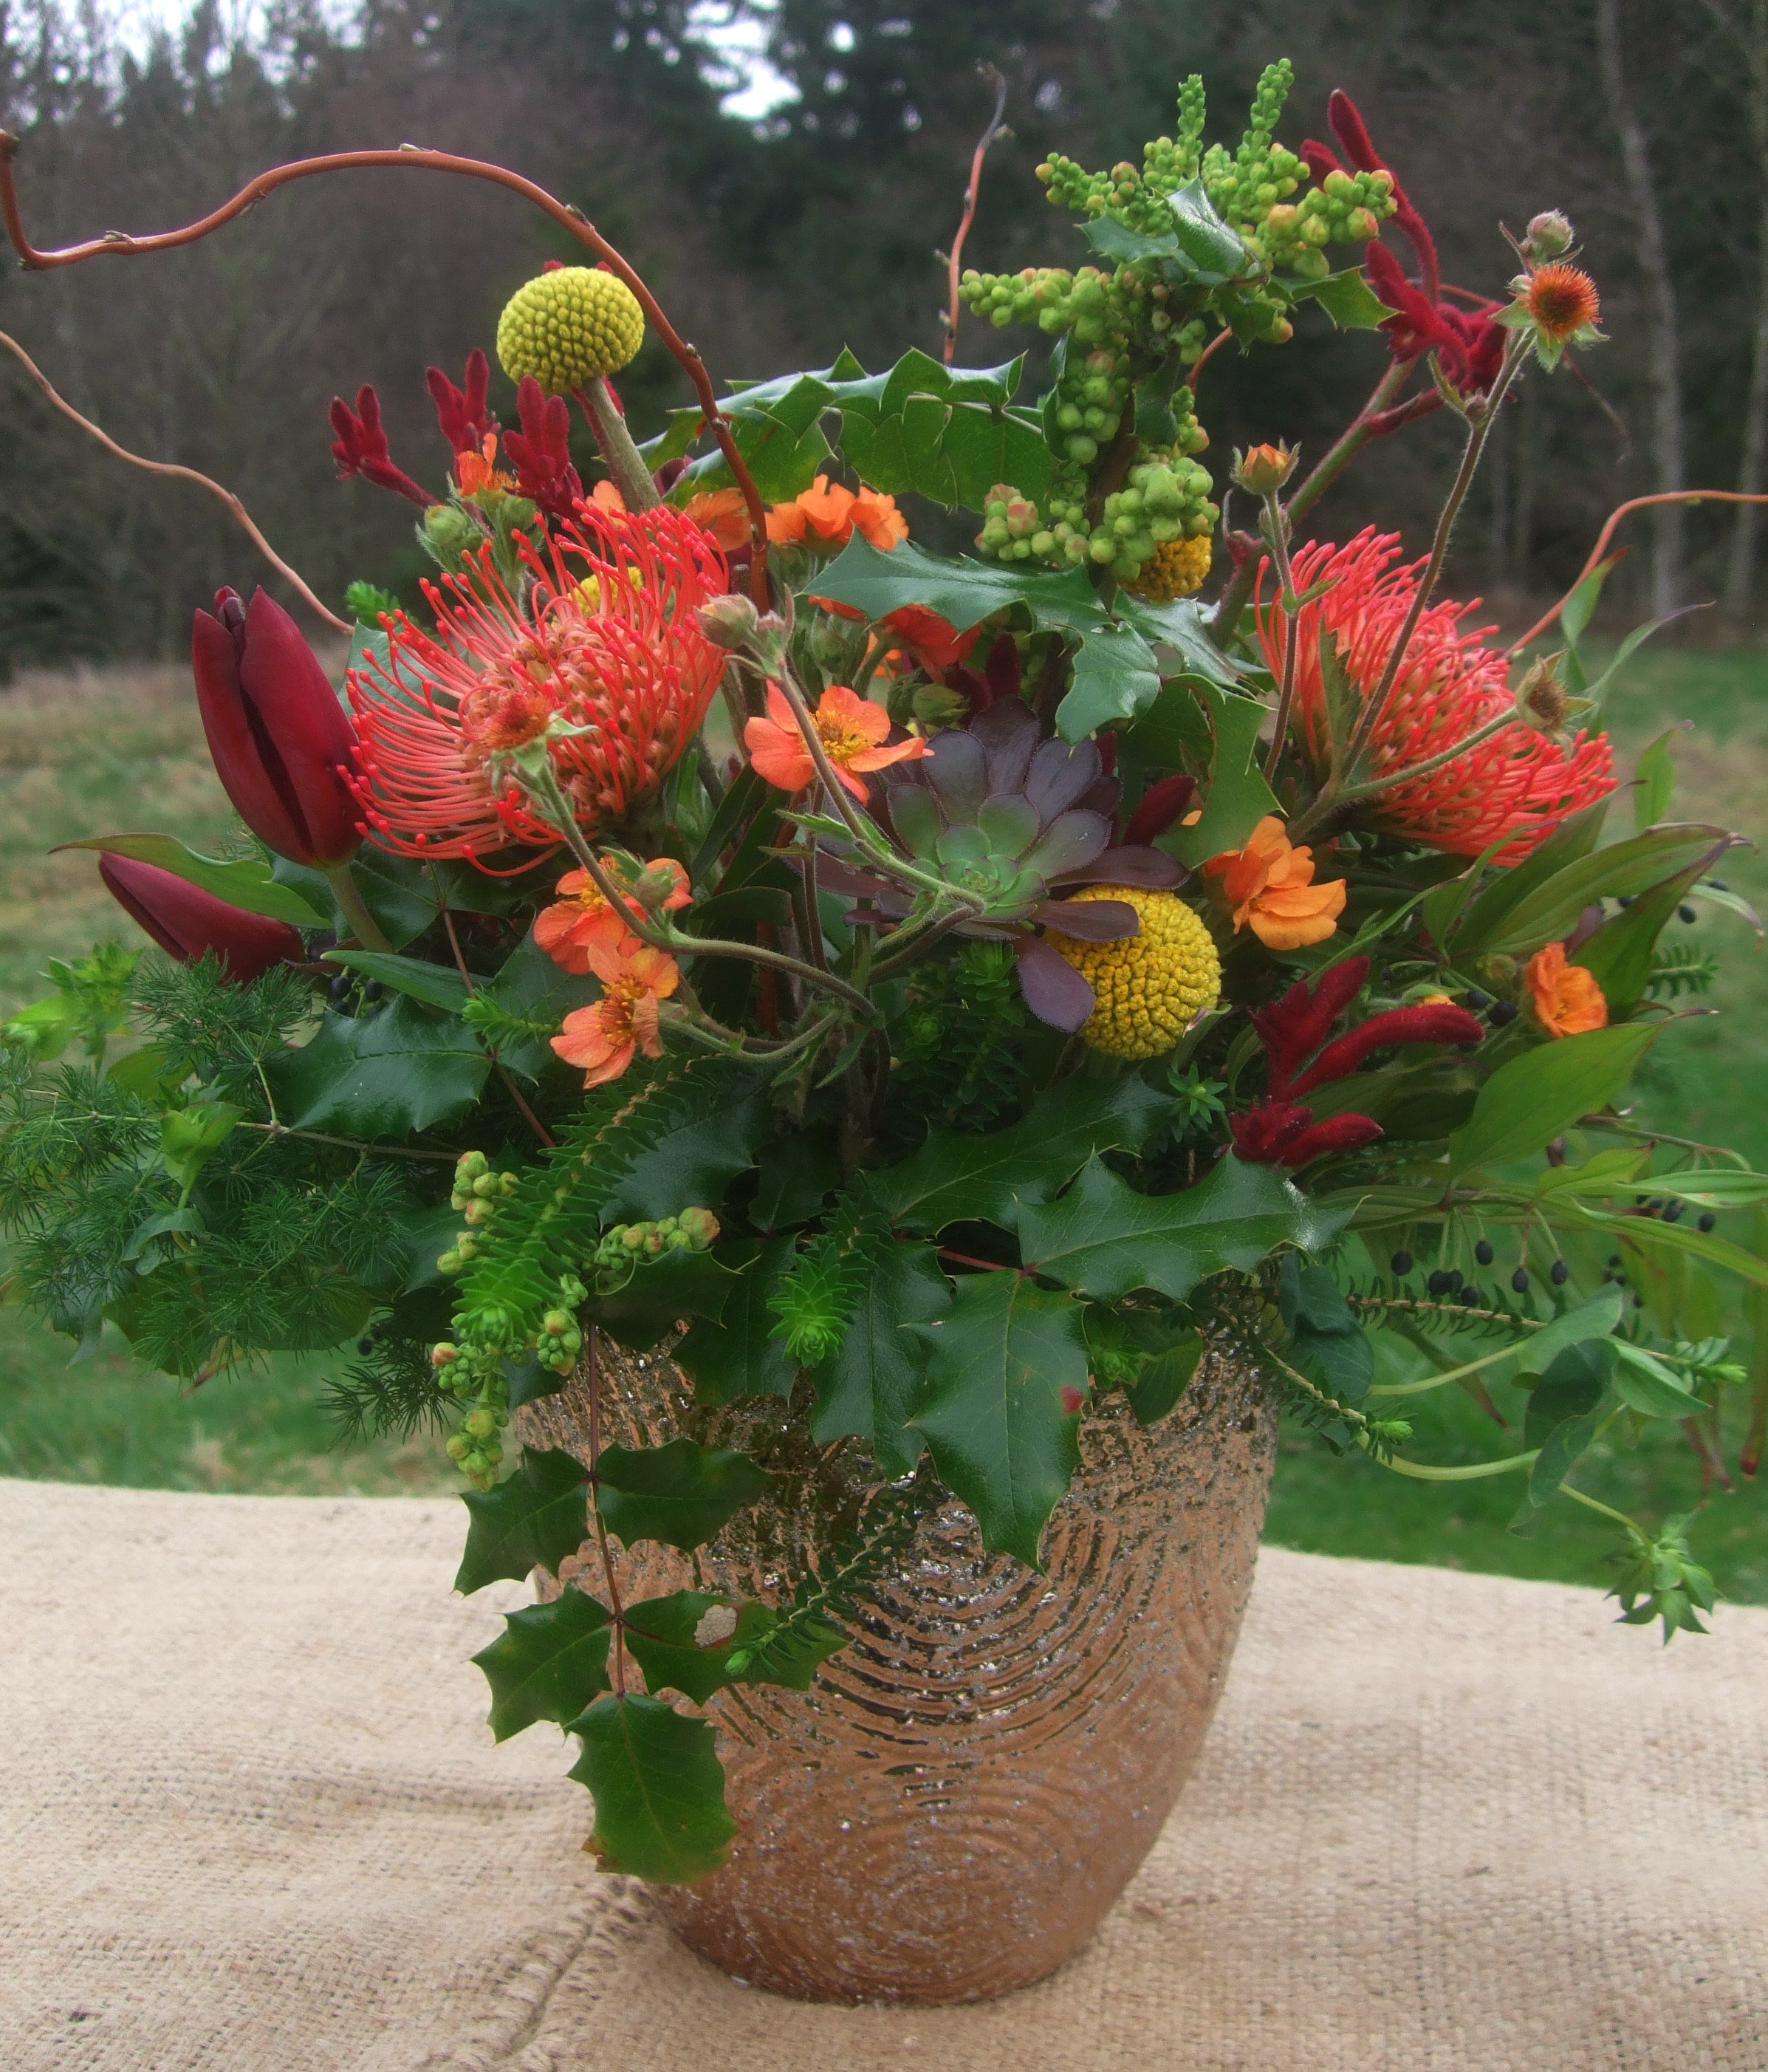 image of hot colored bouquet in a mettallic bronze vase